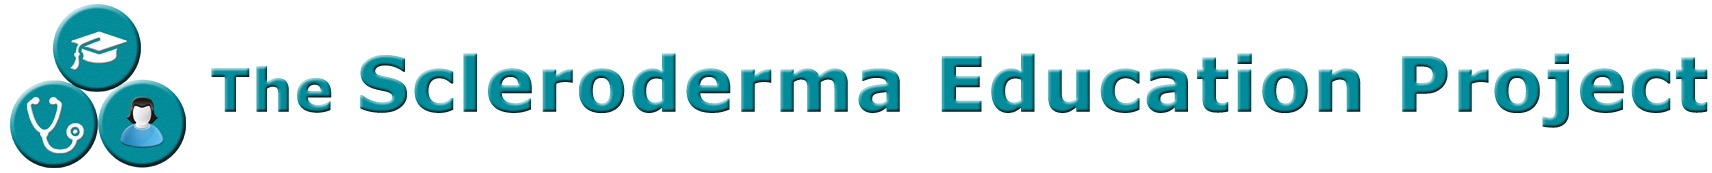 Scleroderma Education Project Logo